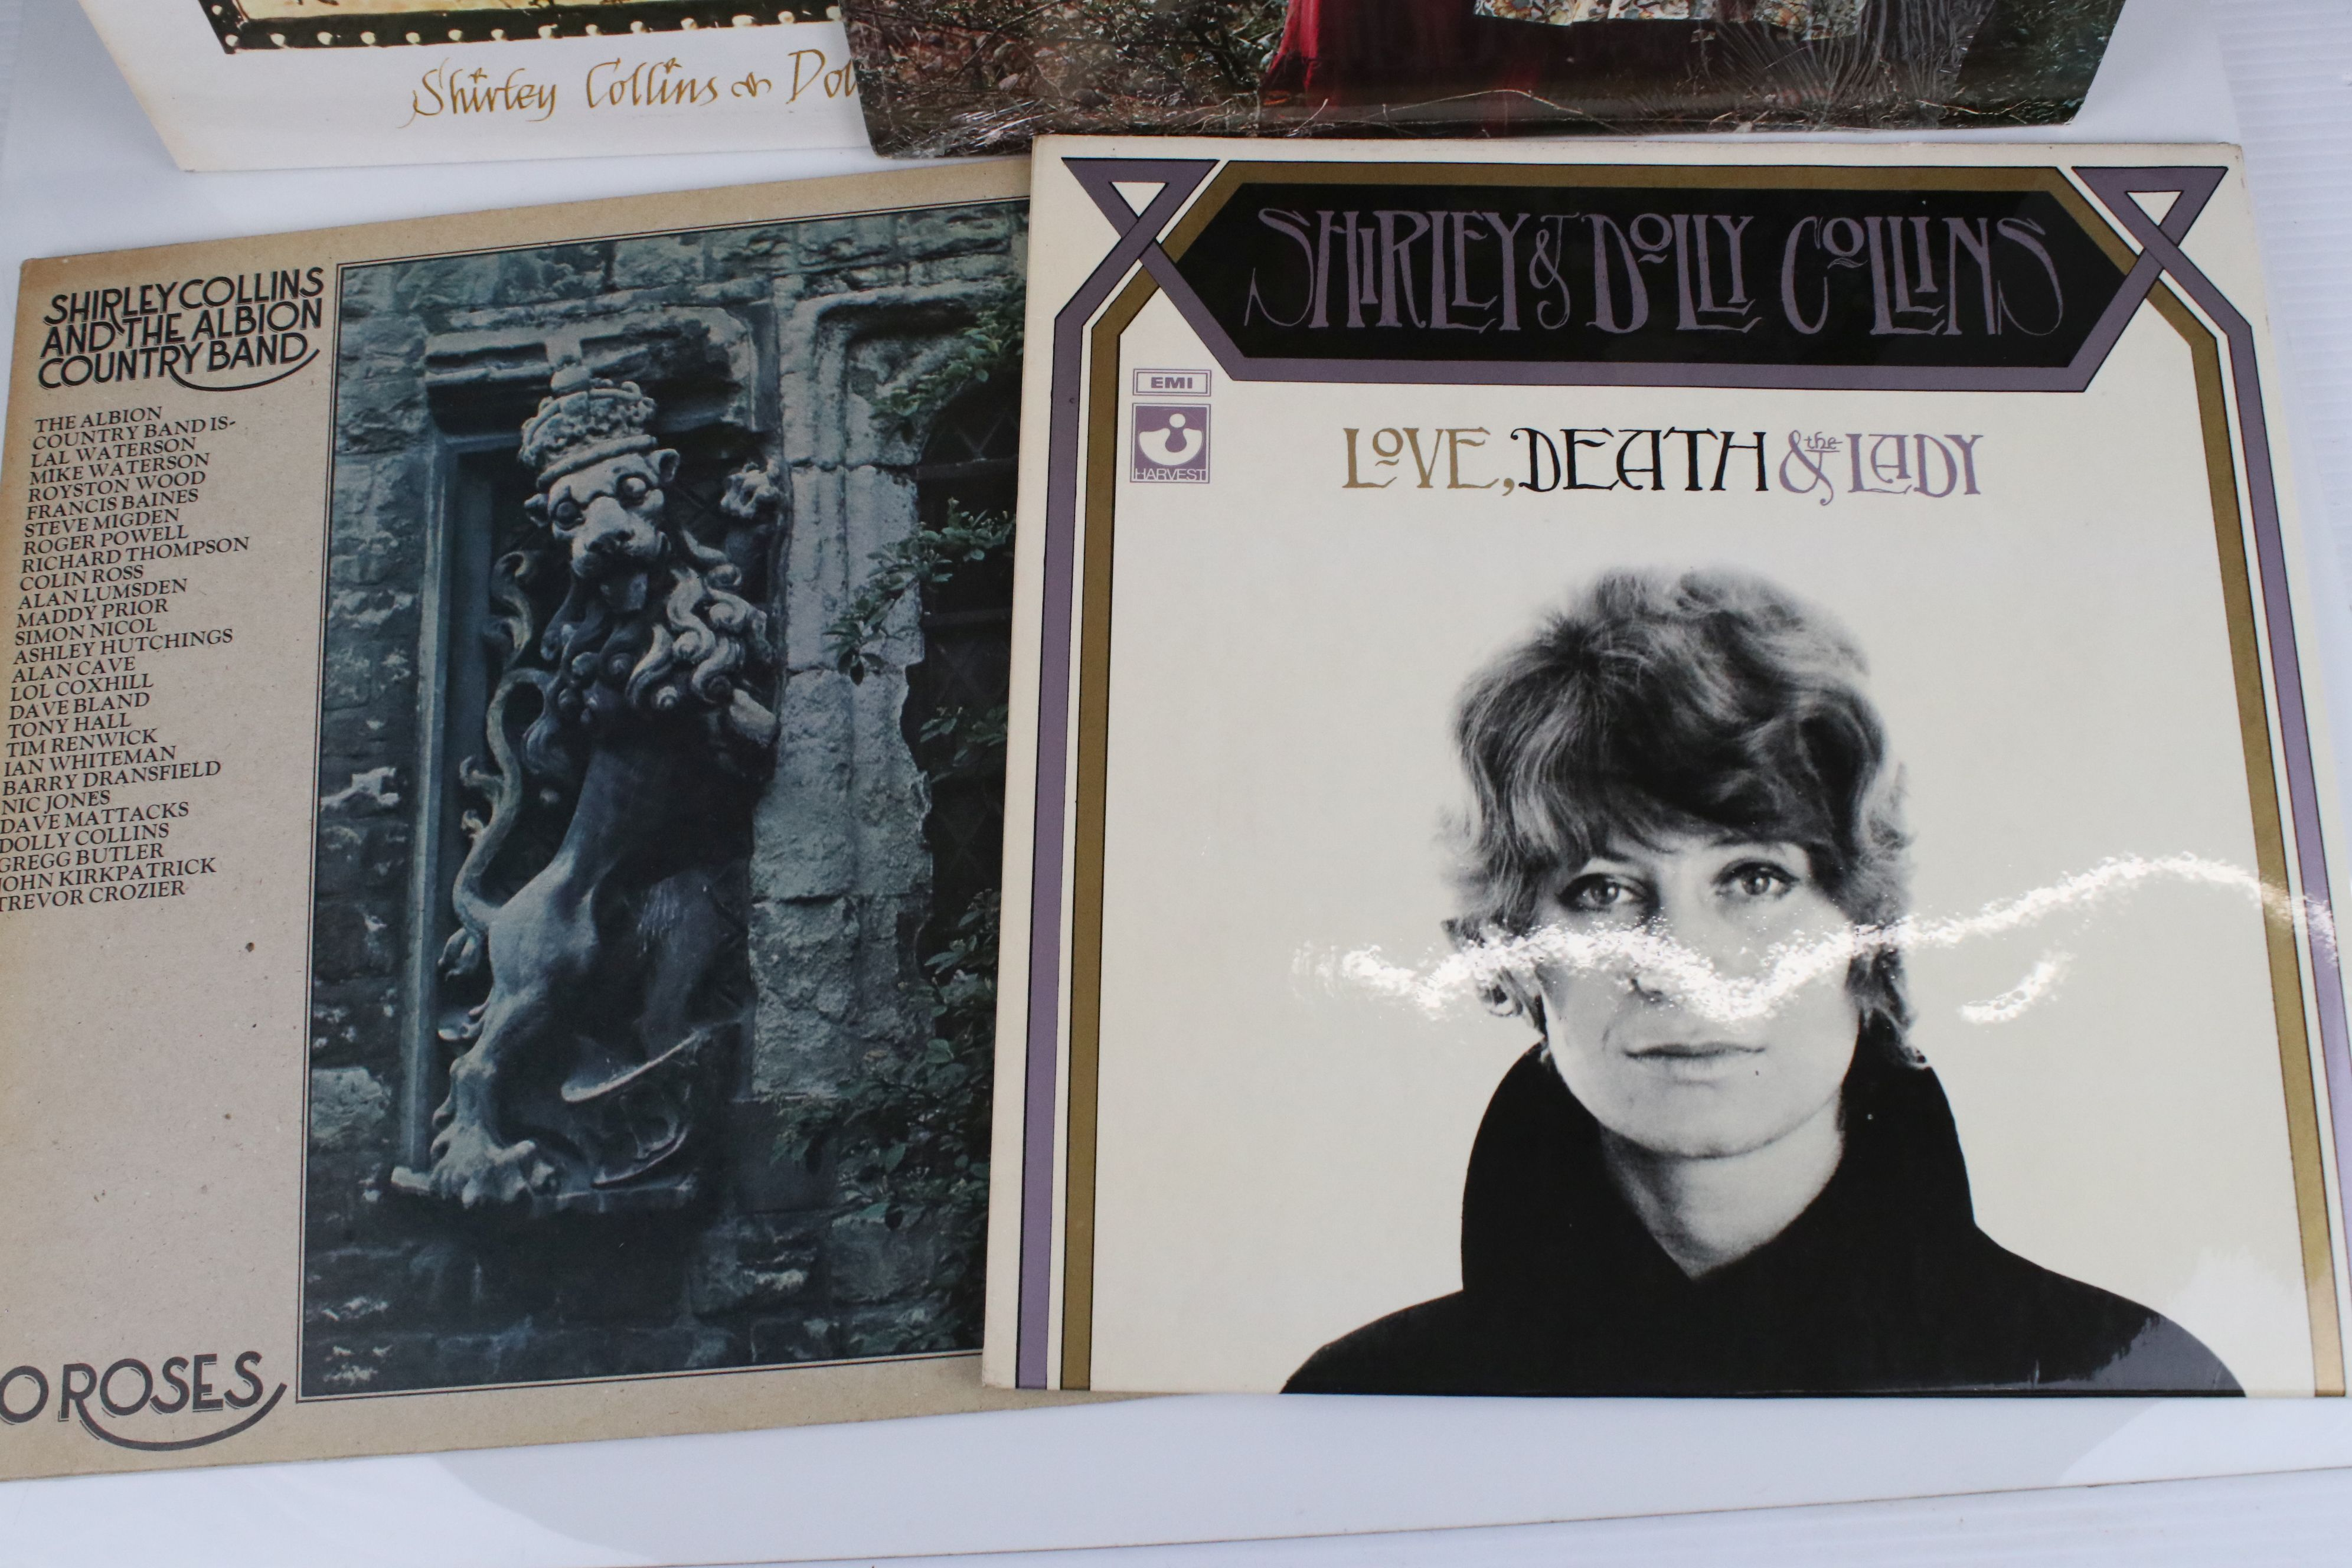 Vinyl - Shirley & Dolly Collins 4 LP's to include Love, Death & The Lady (SHVL 771) sleeve VG+ vinyl - Image 2 of 5